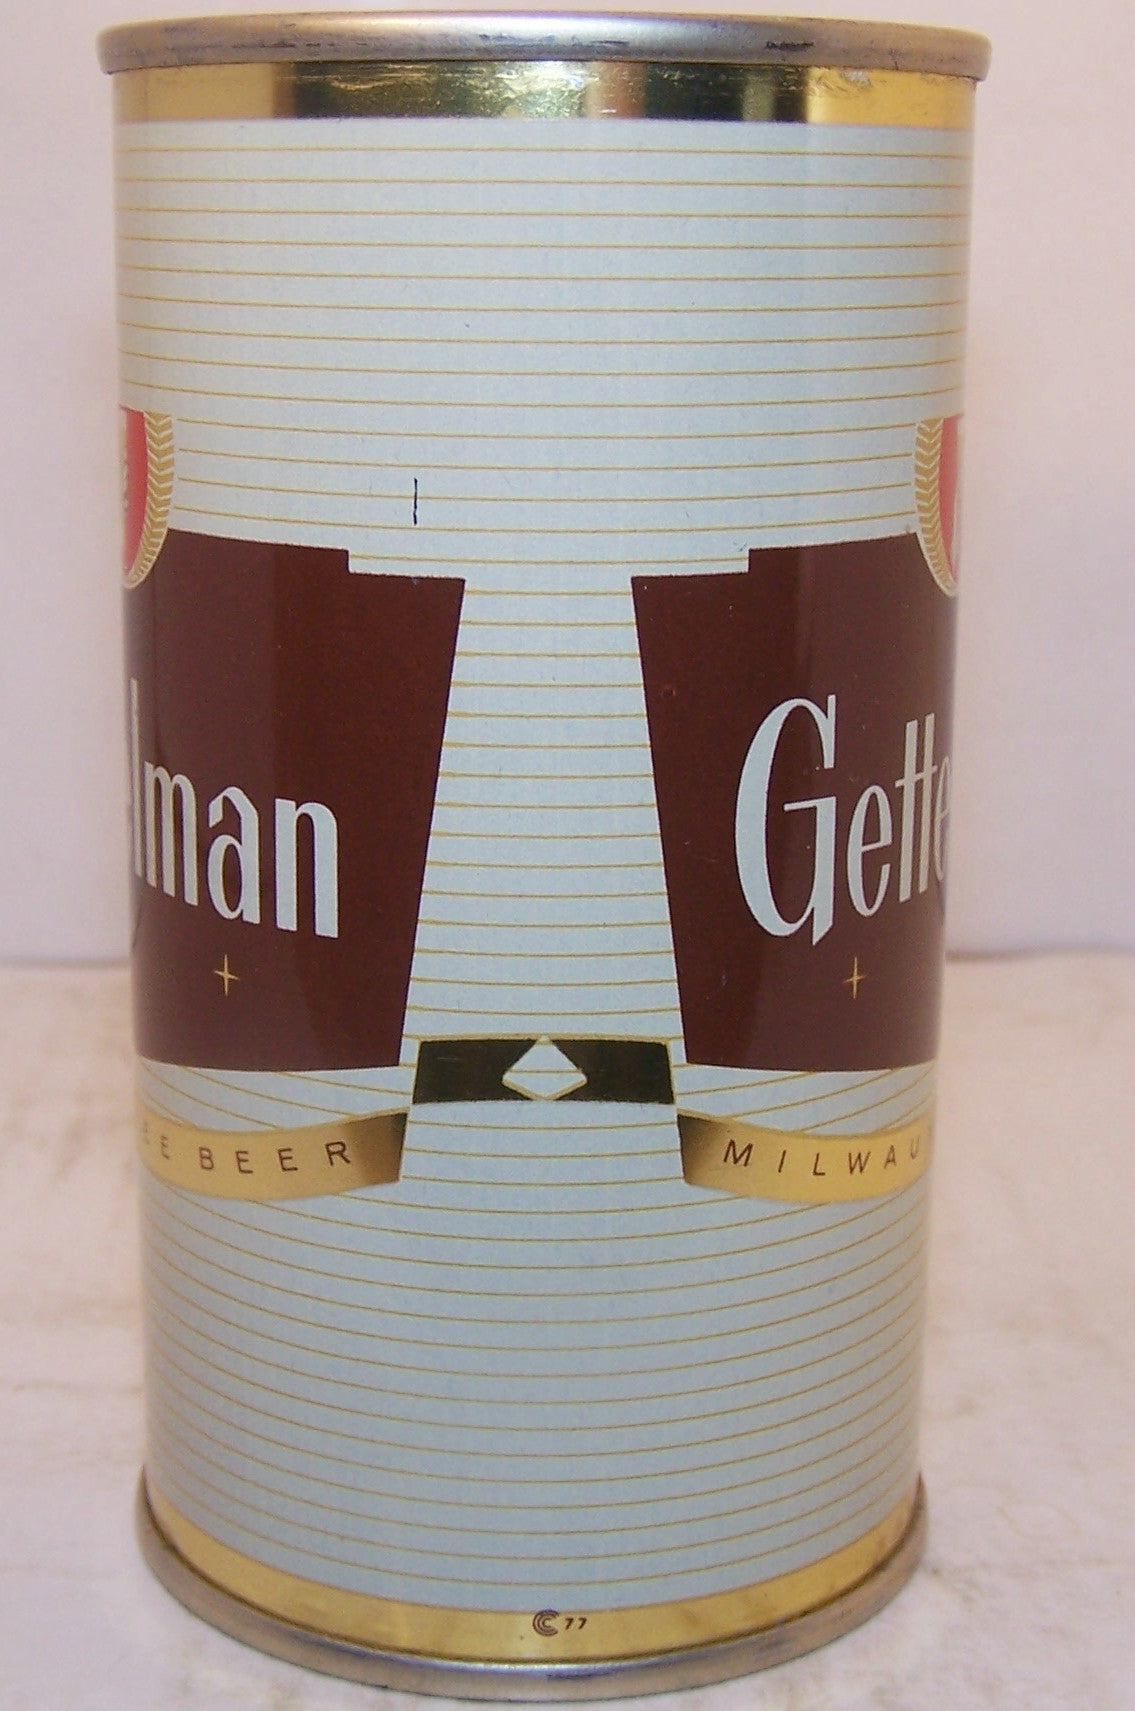 Gettelman USBC 69-5 bank top, Grade A1+